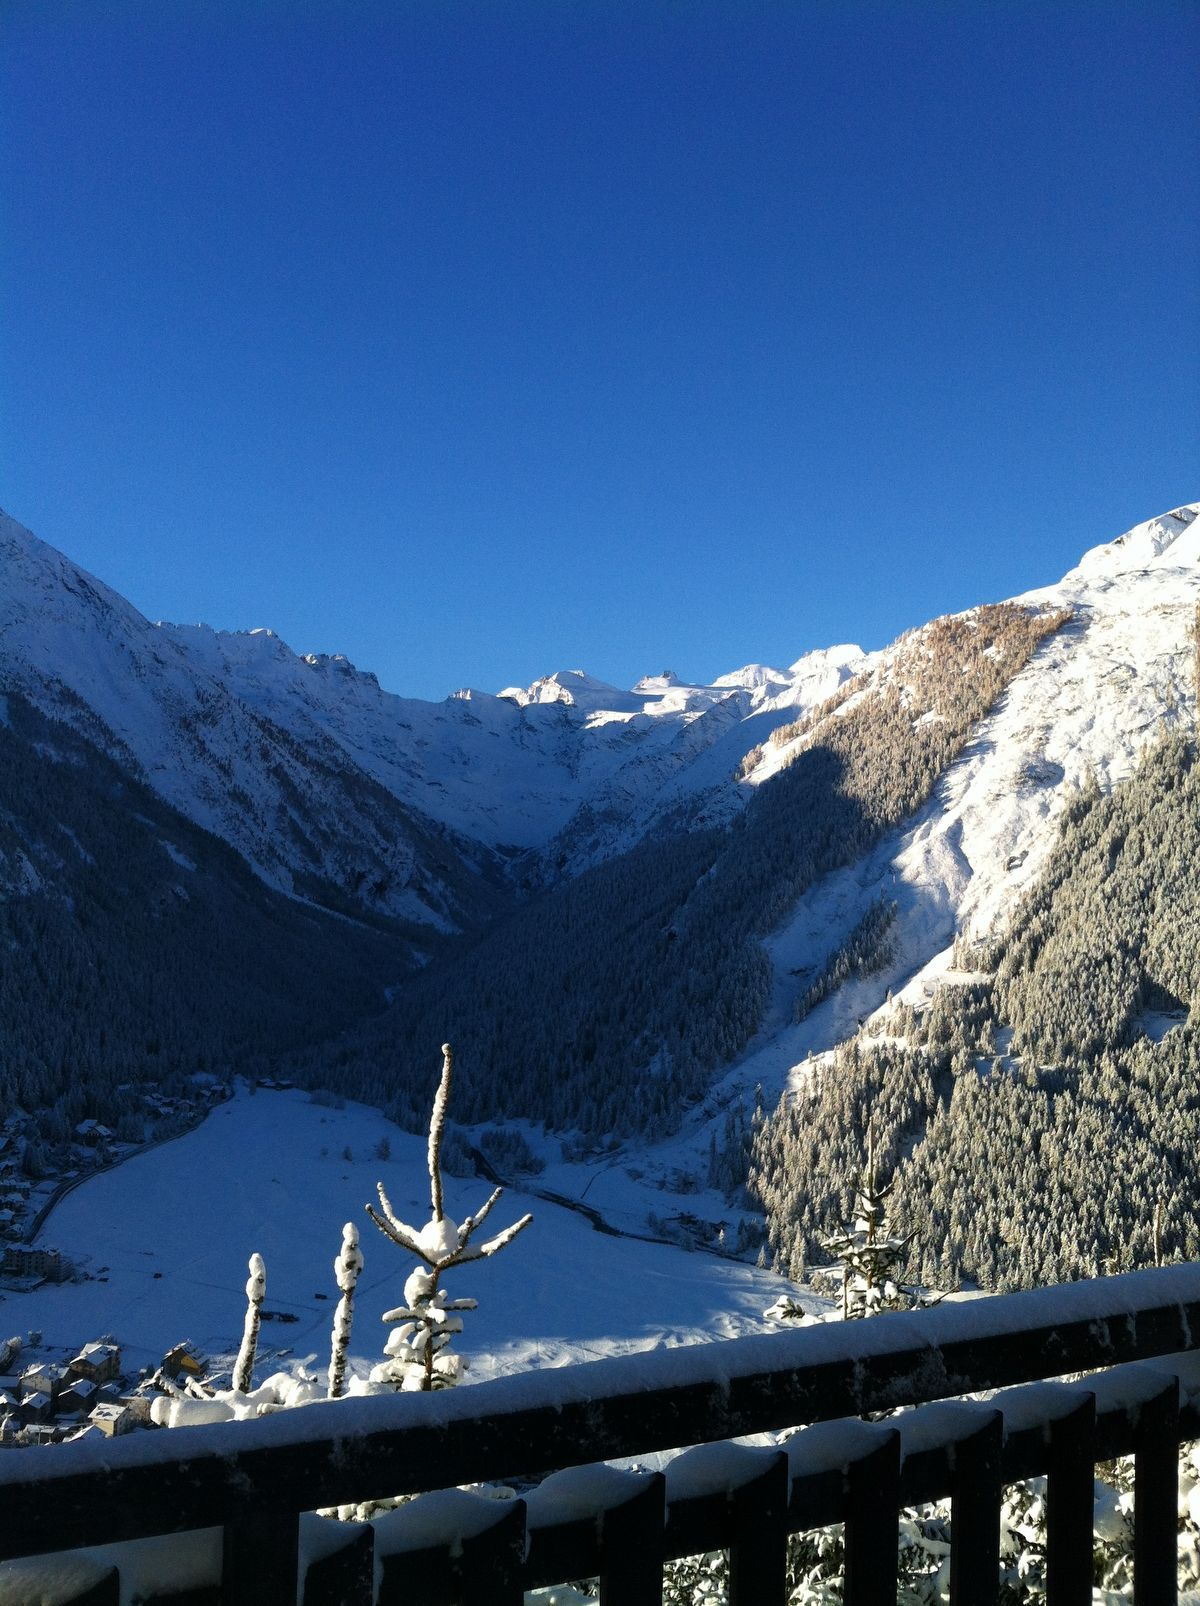 Panorama invernale dall'Hotel Belvedere a Cogne